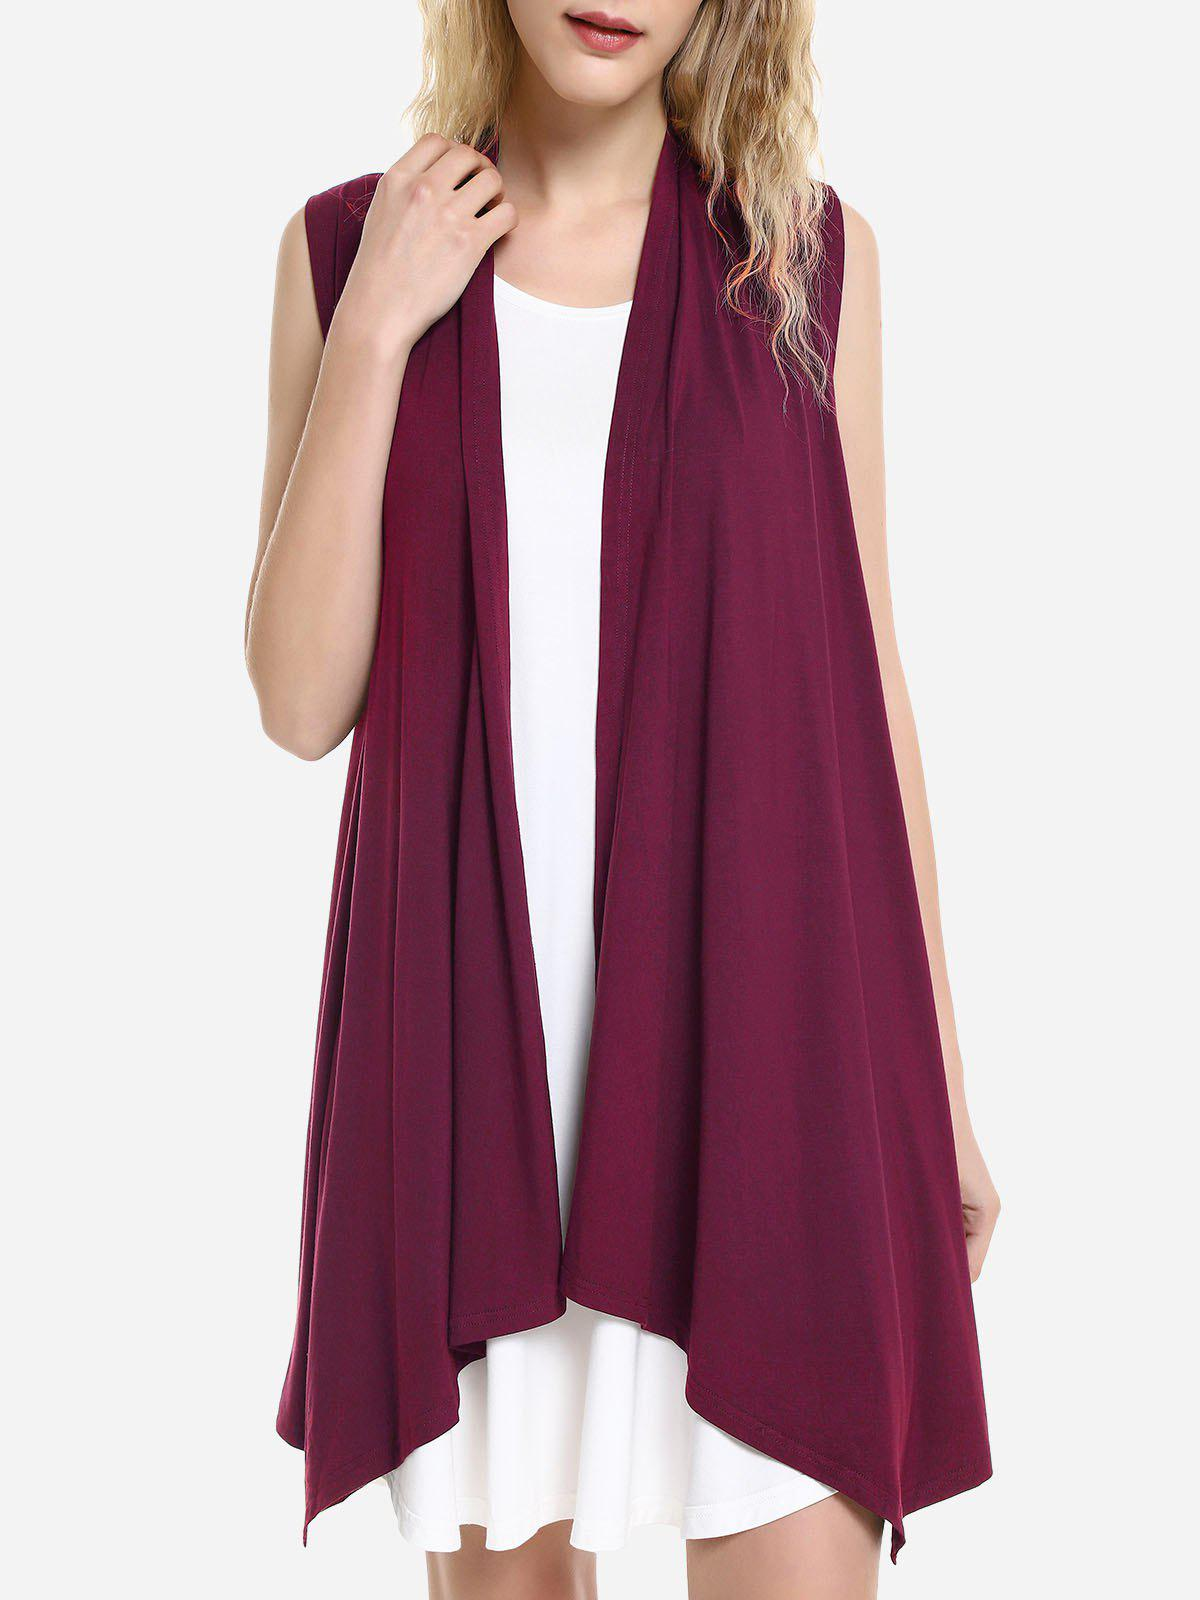 ZAN.STYLE Sleeveless Open Front Vest - DEEP RED L